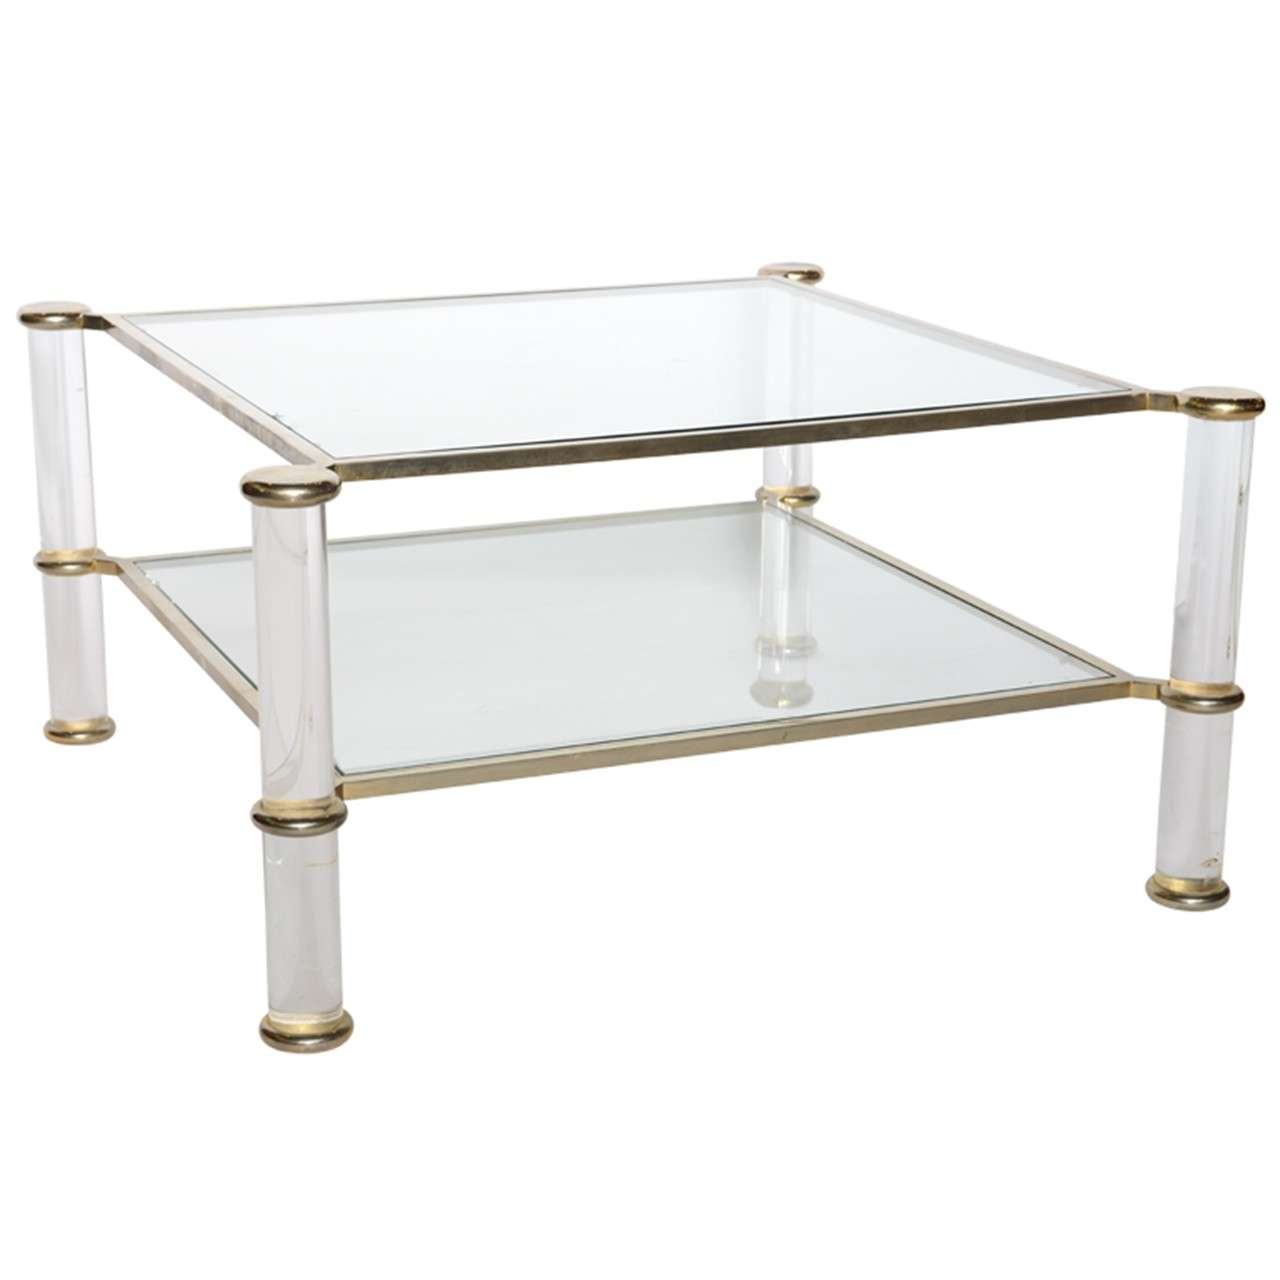 A Lucite, Glass, Chrome And Brass Low Table, Attributed To